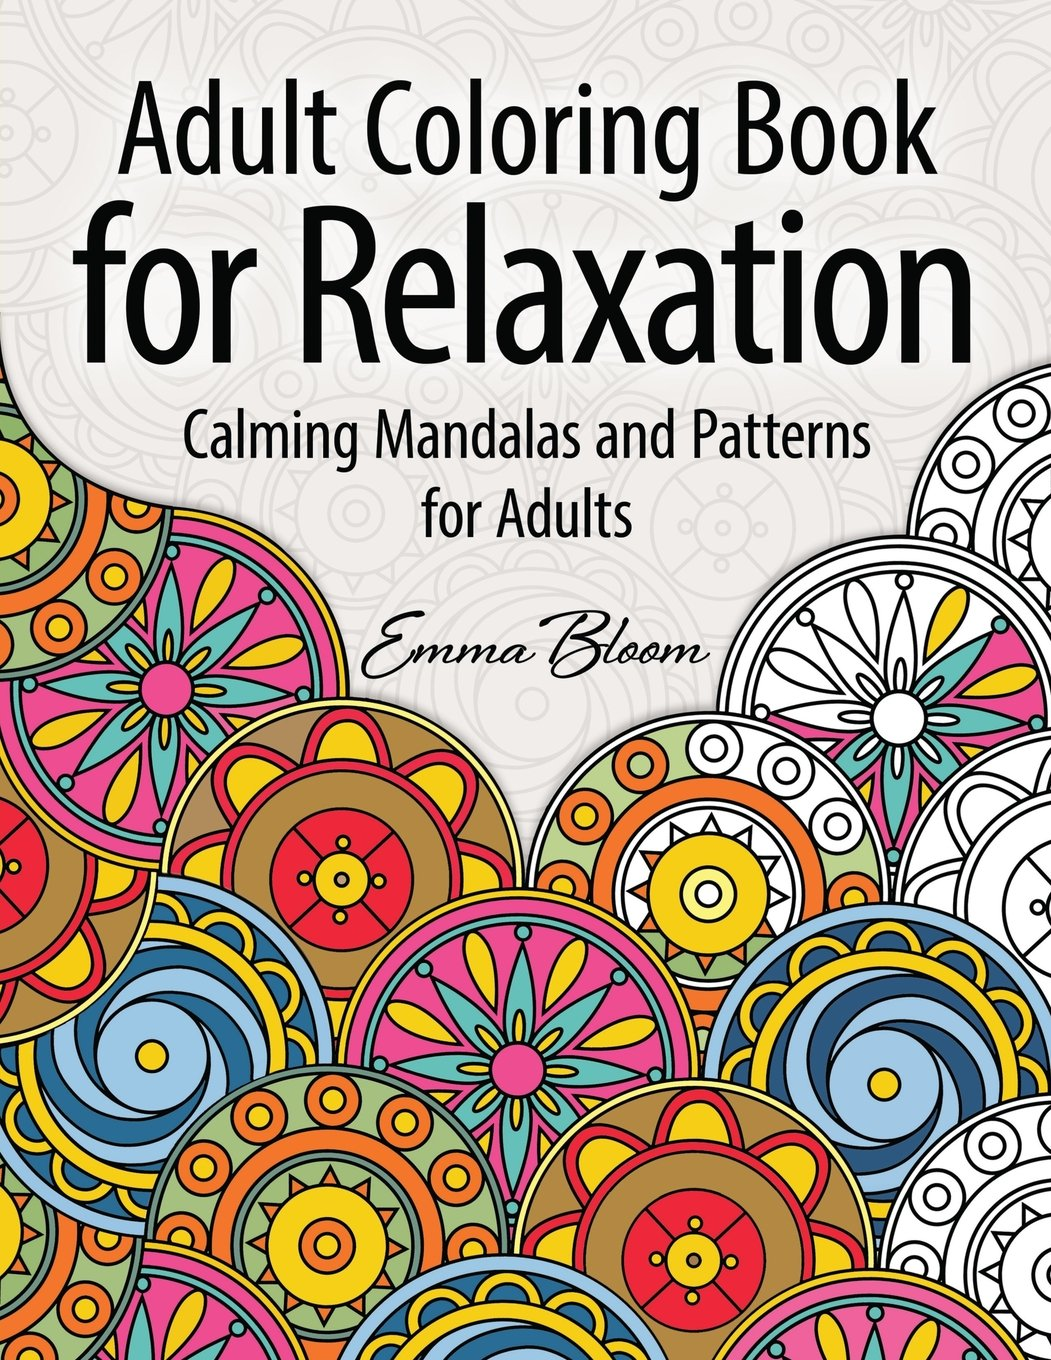 Adult Coloring Book For Relaxation Calming Mandalas And Patterns